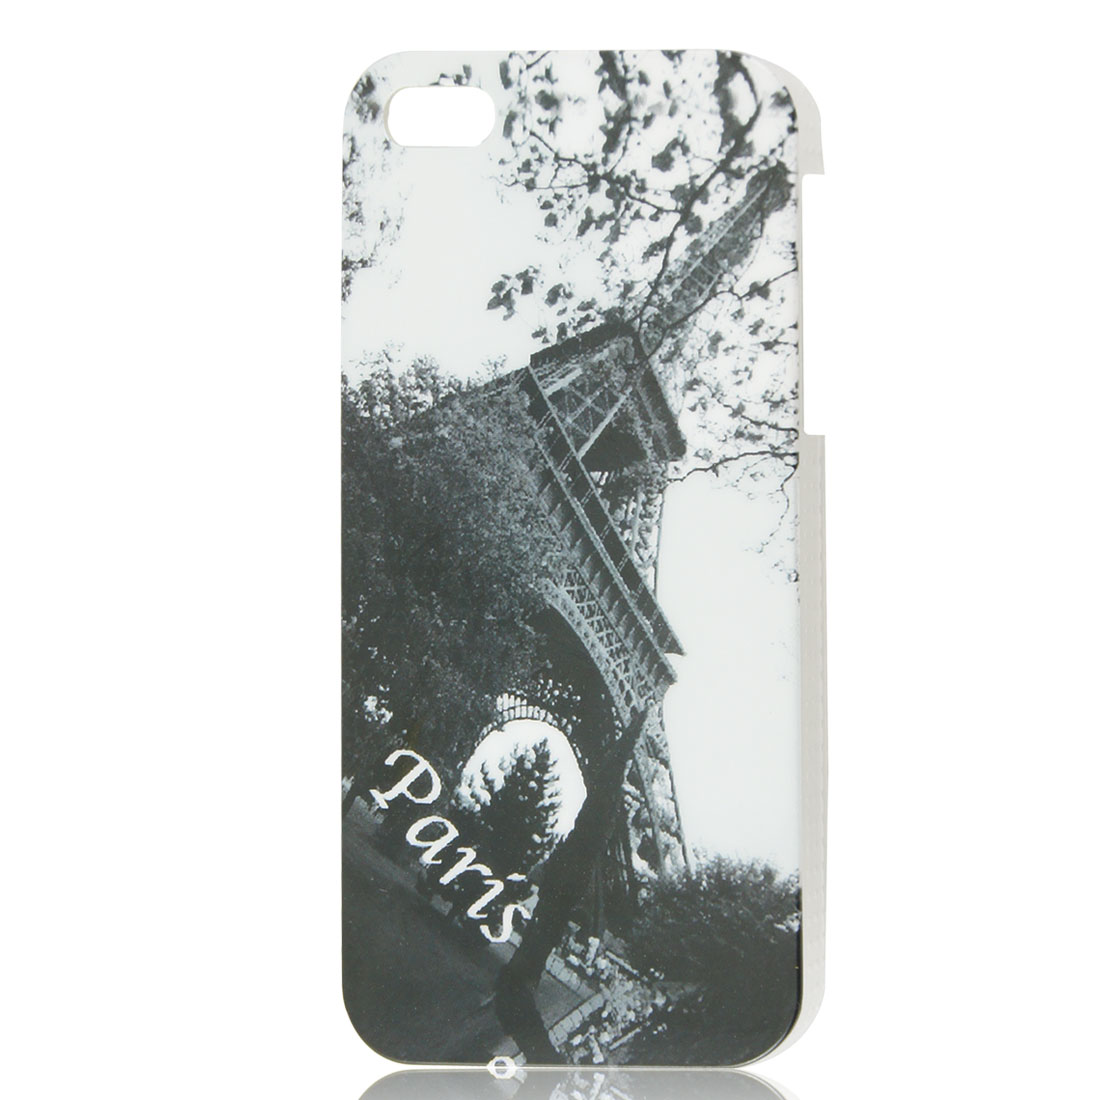 Vintage Style Eiffel Tower Design Gray IMD Hard Back Case Cover for iPhone 5 5G